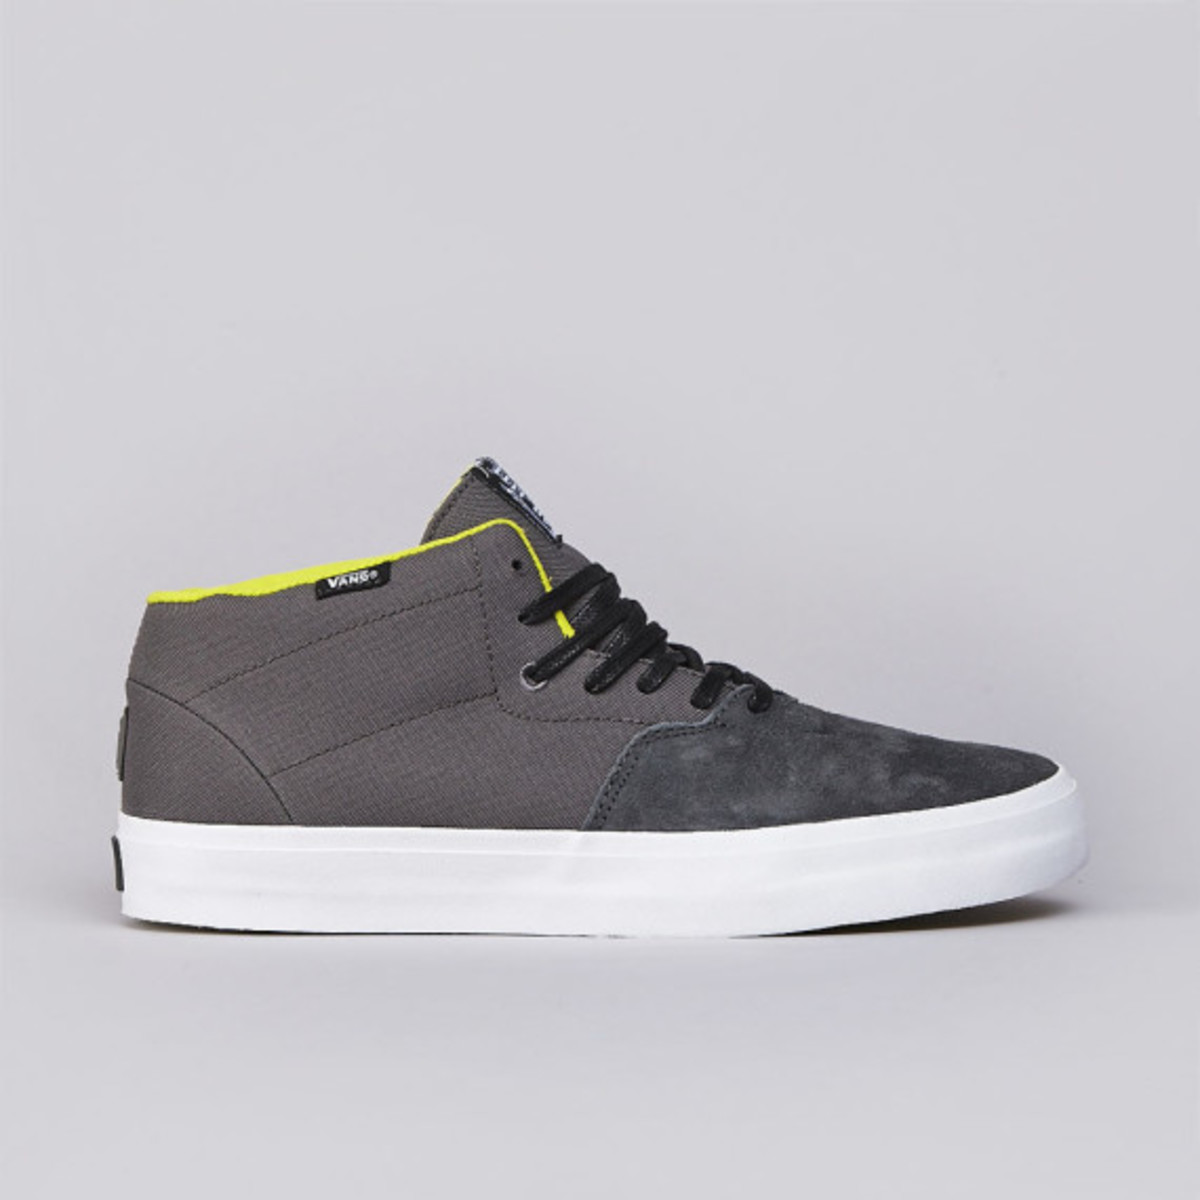 "VANS Syndicate Cab Lite ""S"" - June 2013 Releases - 6"